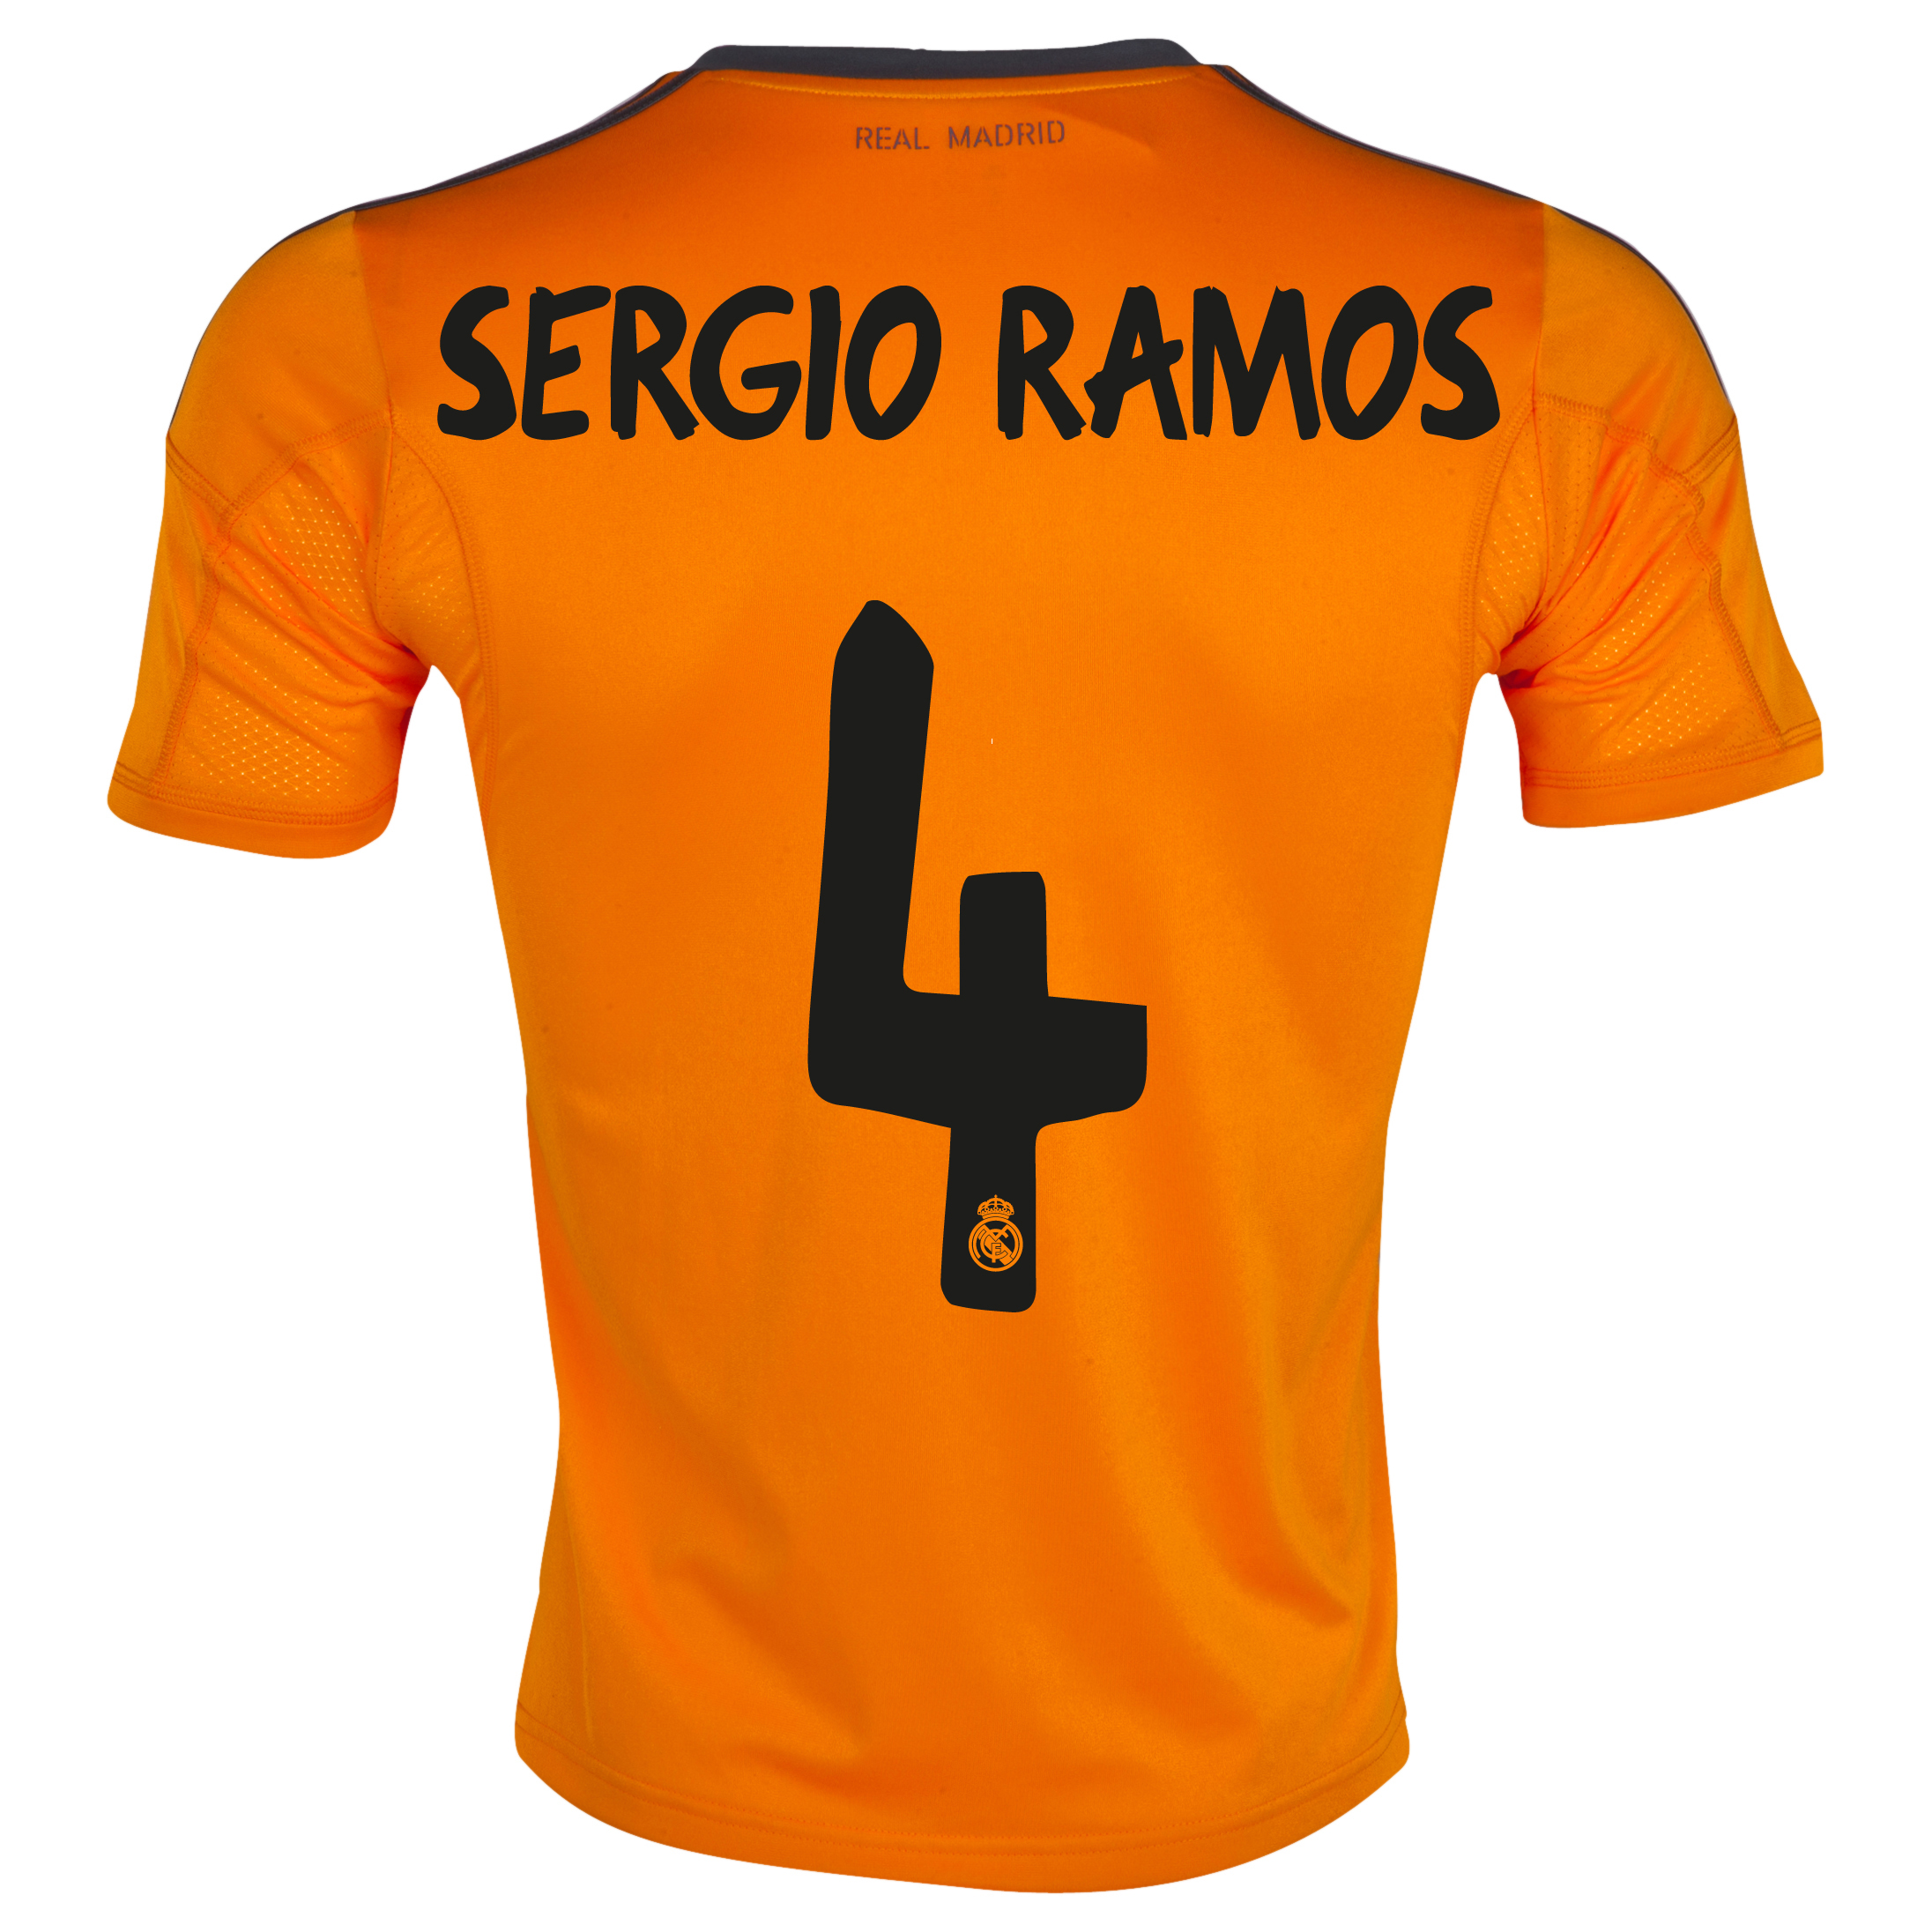 Real Madrid Third Shirt 2013/14 with Sergio Ramos 4 printing